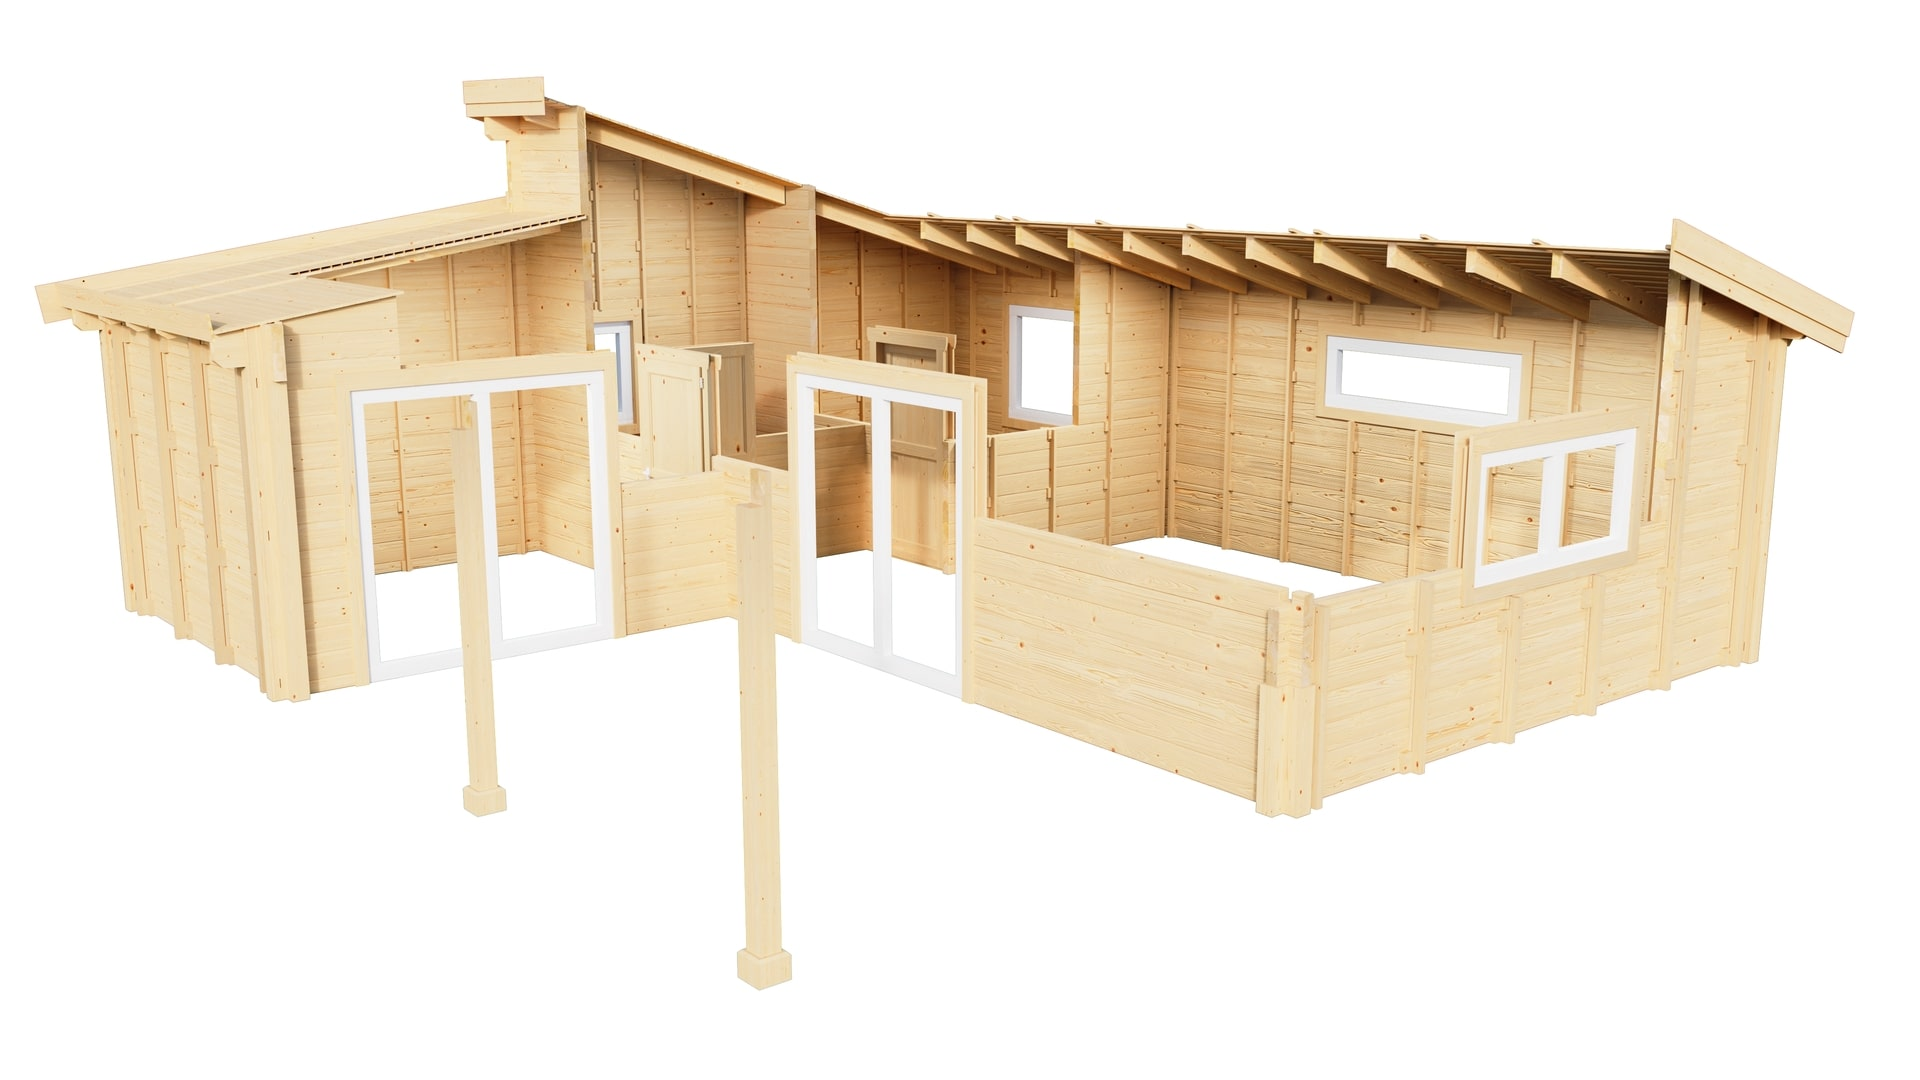 Supplied timber structure